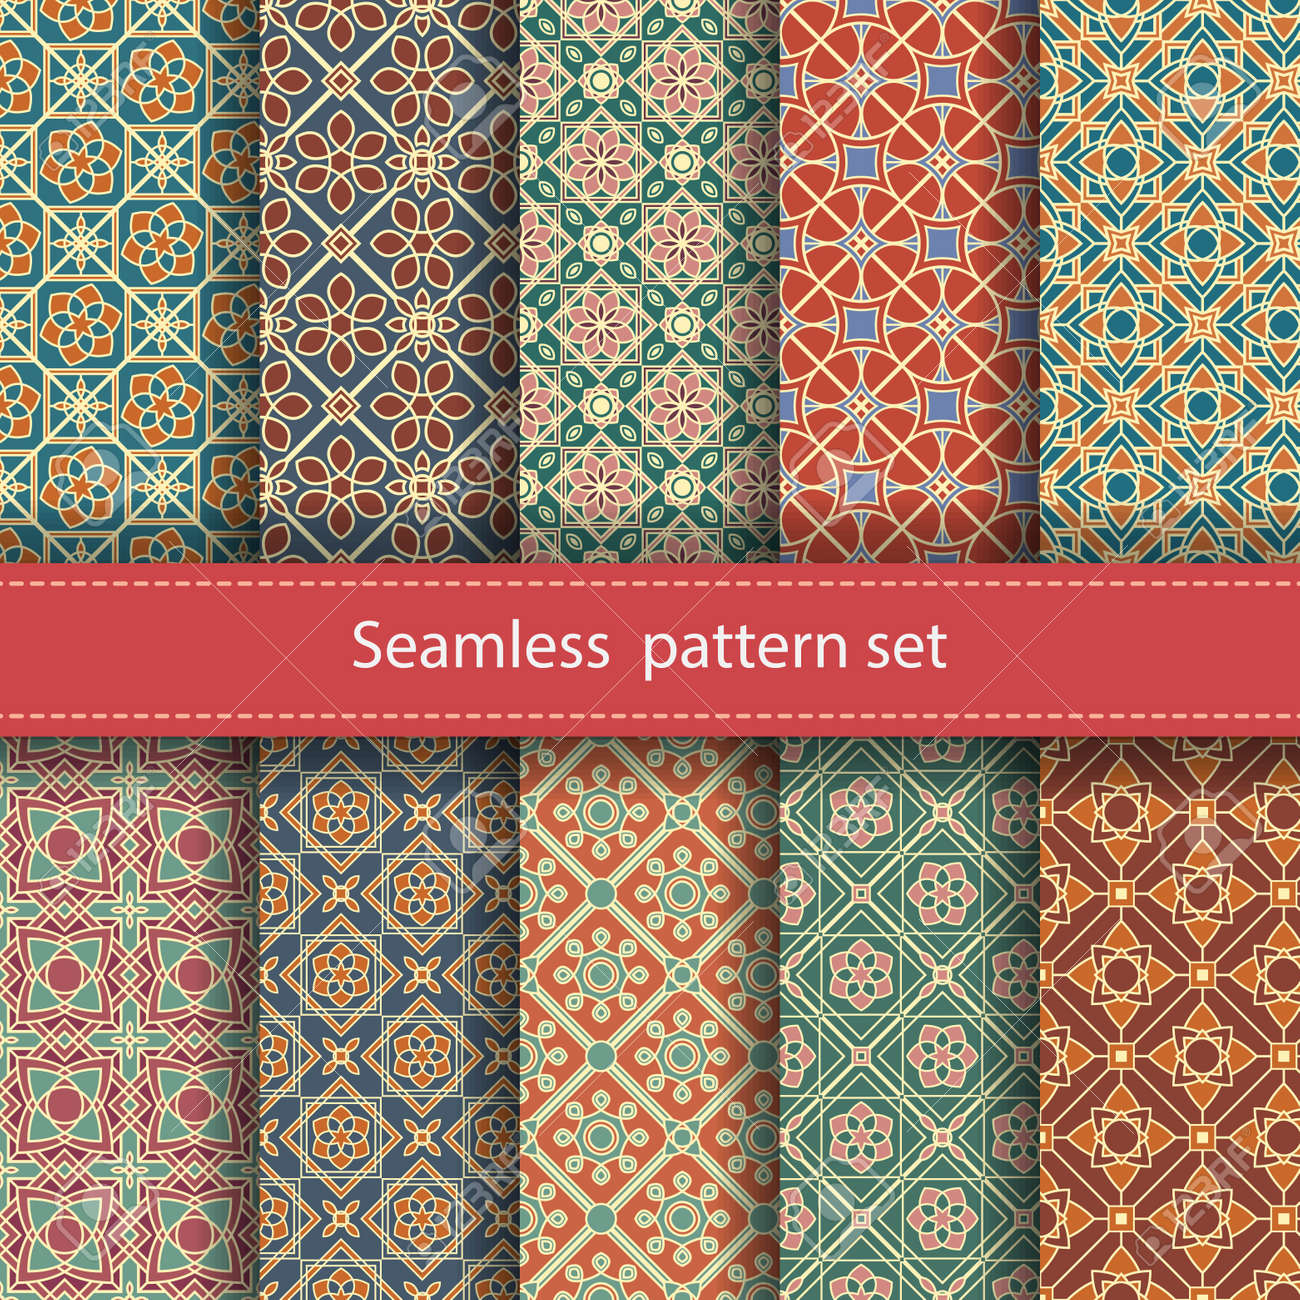 Vector set of 10 seamless mosaic patterns. Arabic tile texture with geometric ornament. Decorative and design elements for textile, book covers, manufacturing, wallpapers, print, gift wrap. Stock Vector - 48065870